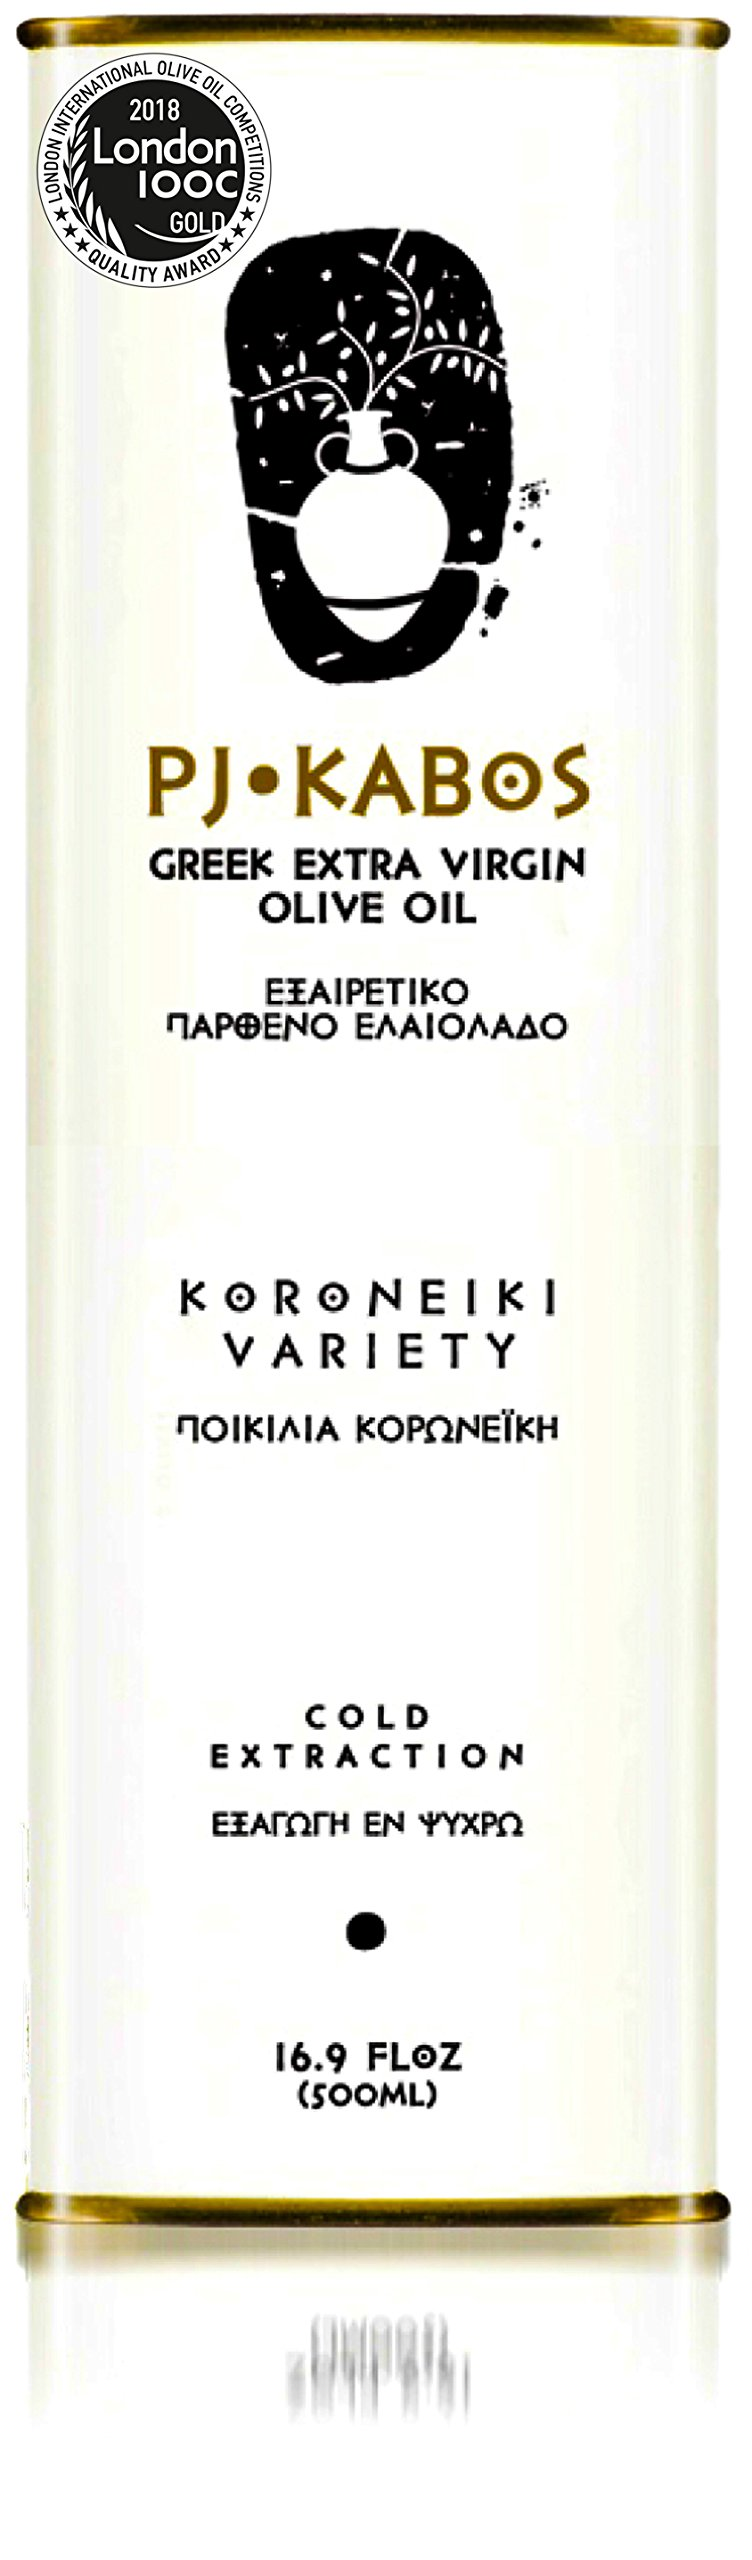 2018 GOLD Medal Winner PJ KABOS 16.9Floz Greek Extra Virgin Olive Oil | 100% FRESH olive oil born in Ancient Olympia vicinity | From Greece | KORONEIKI Variety |